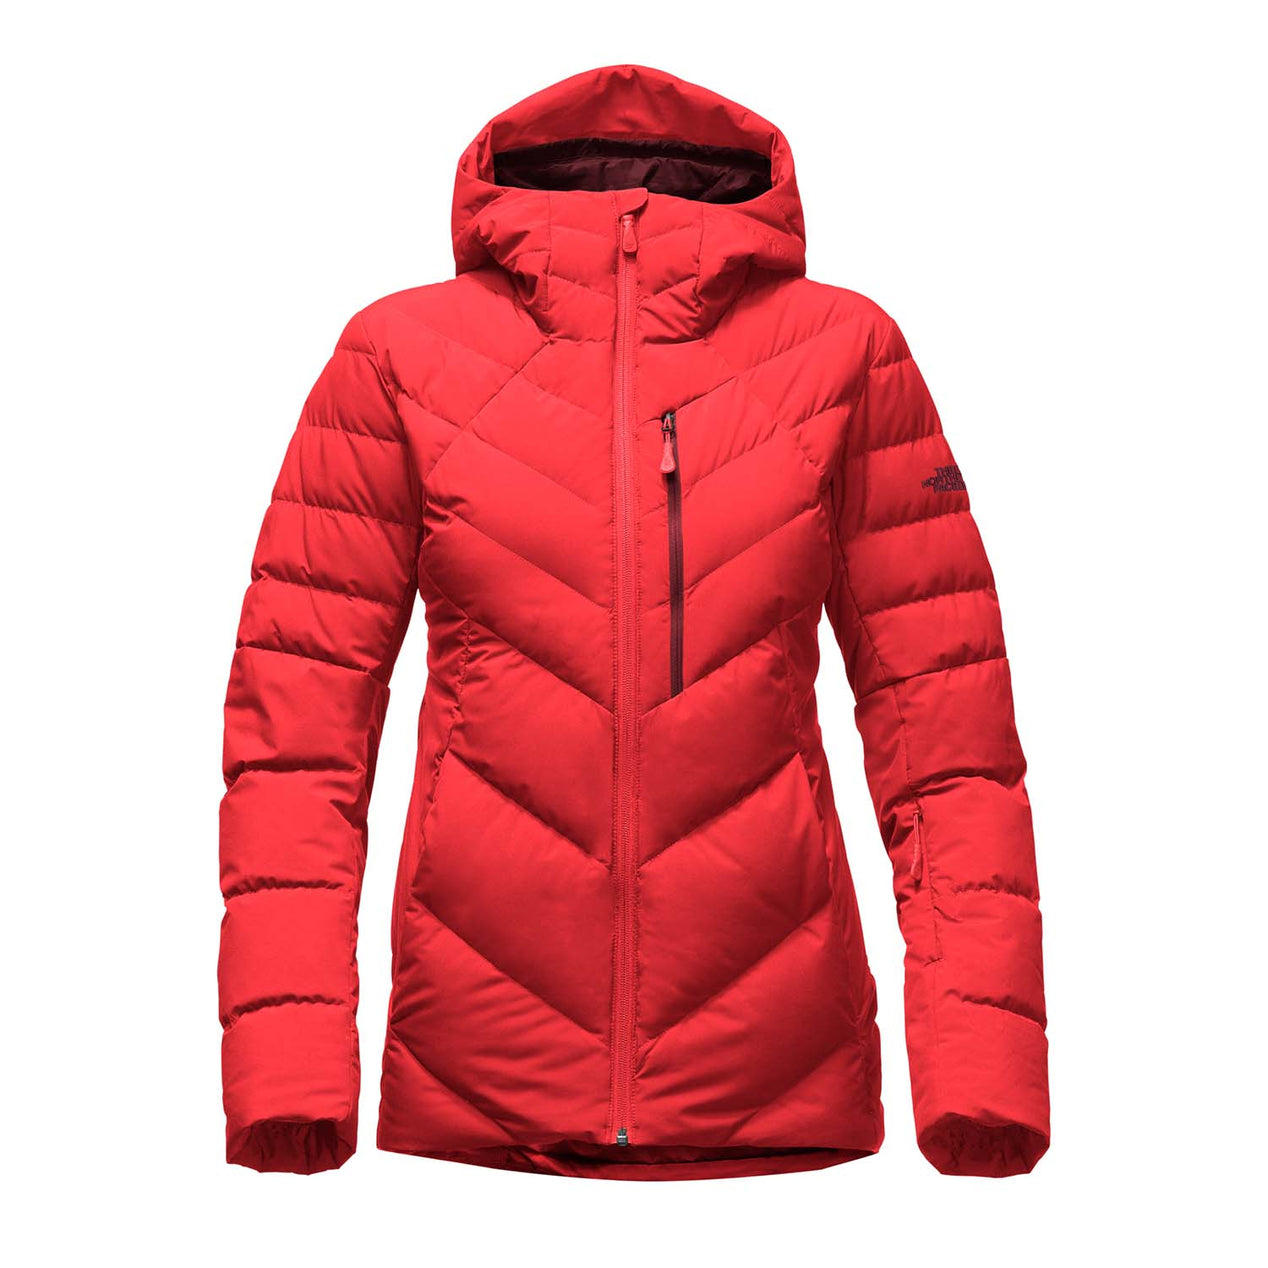 09cf03024 The North Face Women's Corefire Jacket